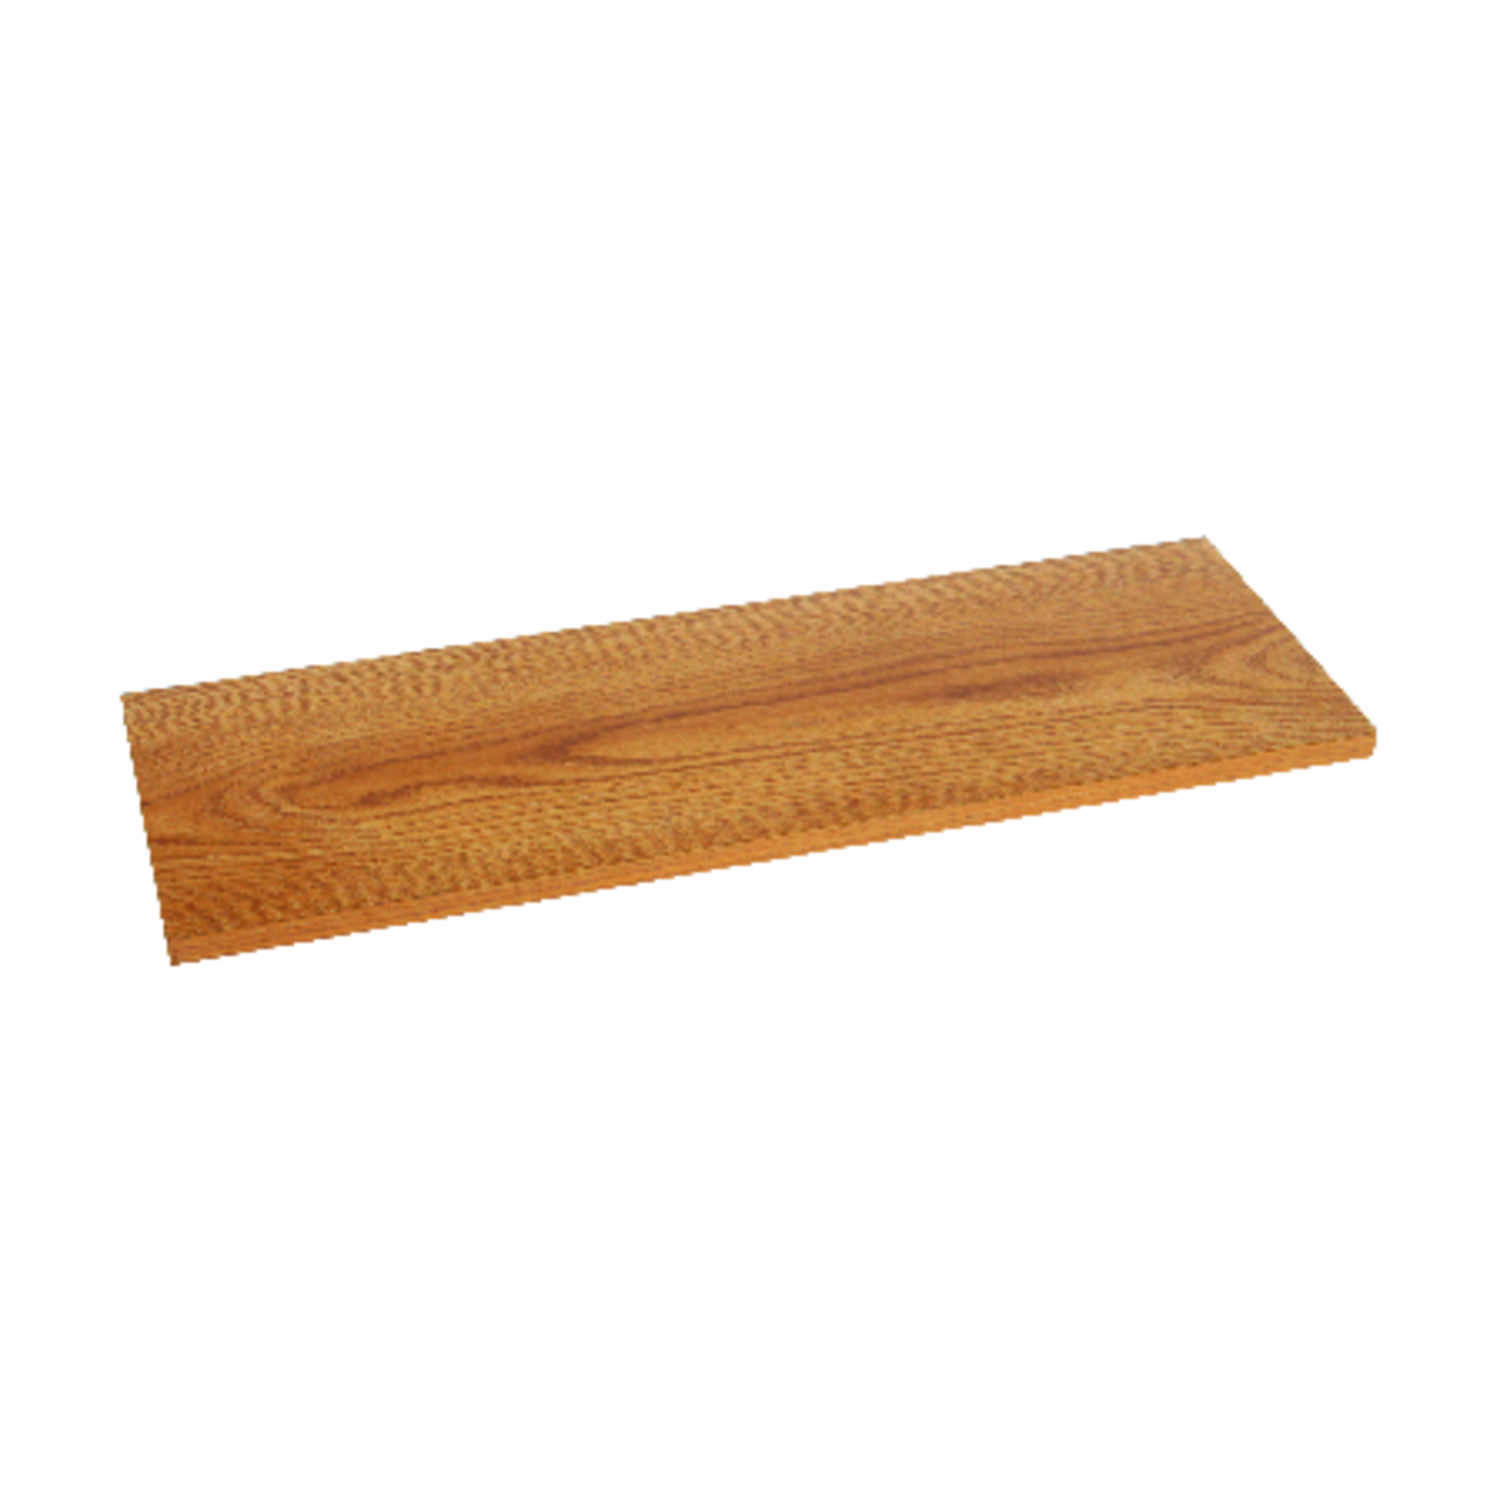 Knape & Vogt  10 in. H x 10 in. W x 24 in. D Oak  Melatex Laminate/Particle Board  Shelf